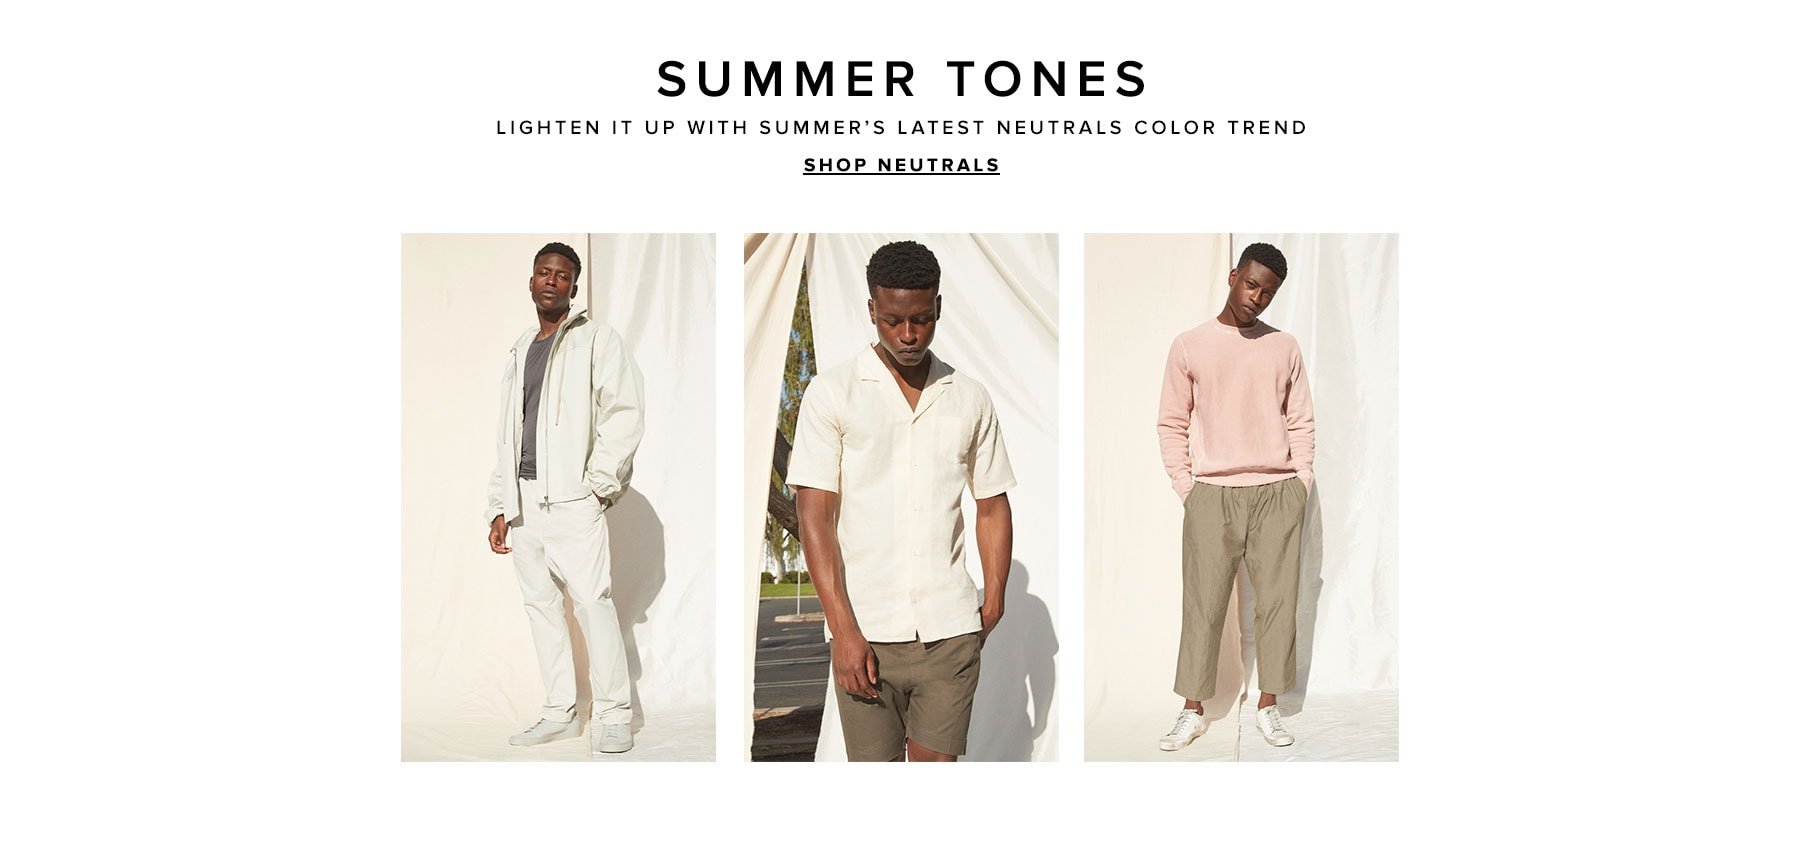 Summer tones. Lighten it up with summer's latest  neutrals color trend. Shop neutrals.